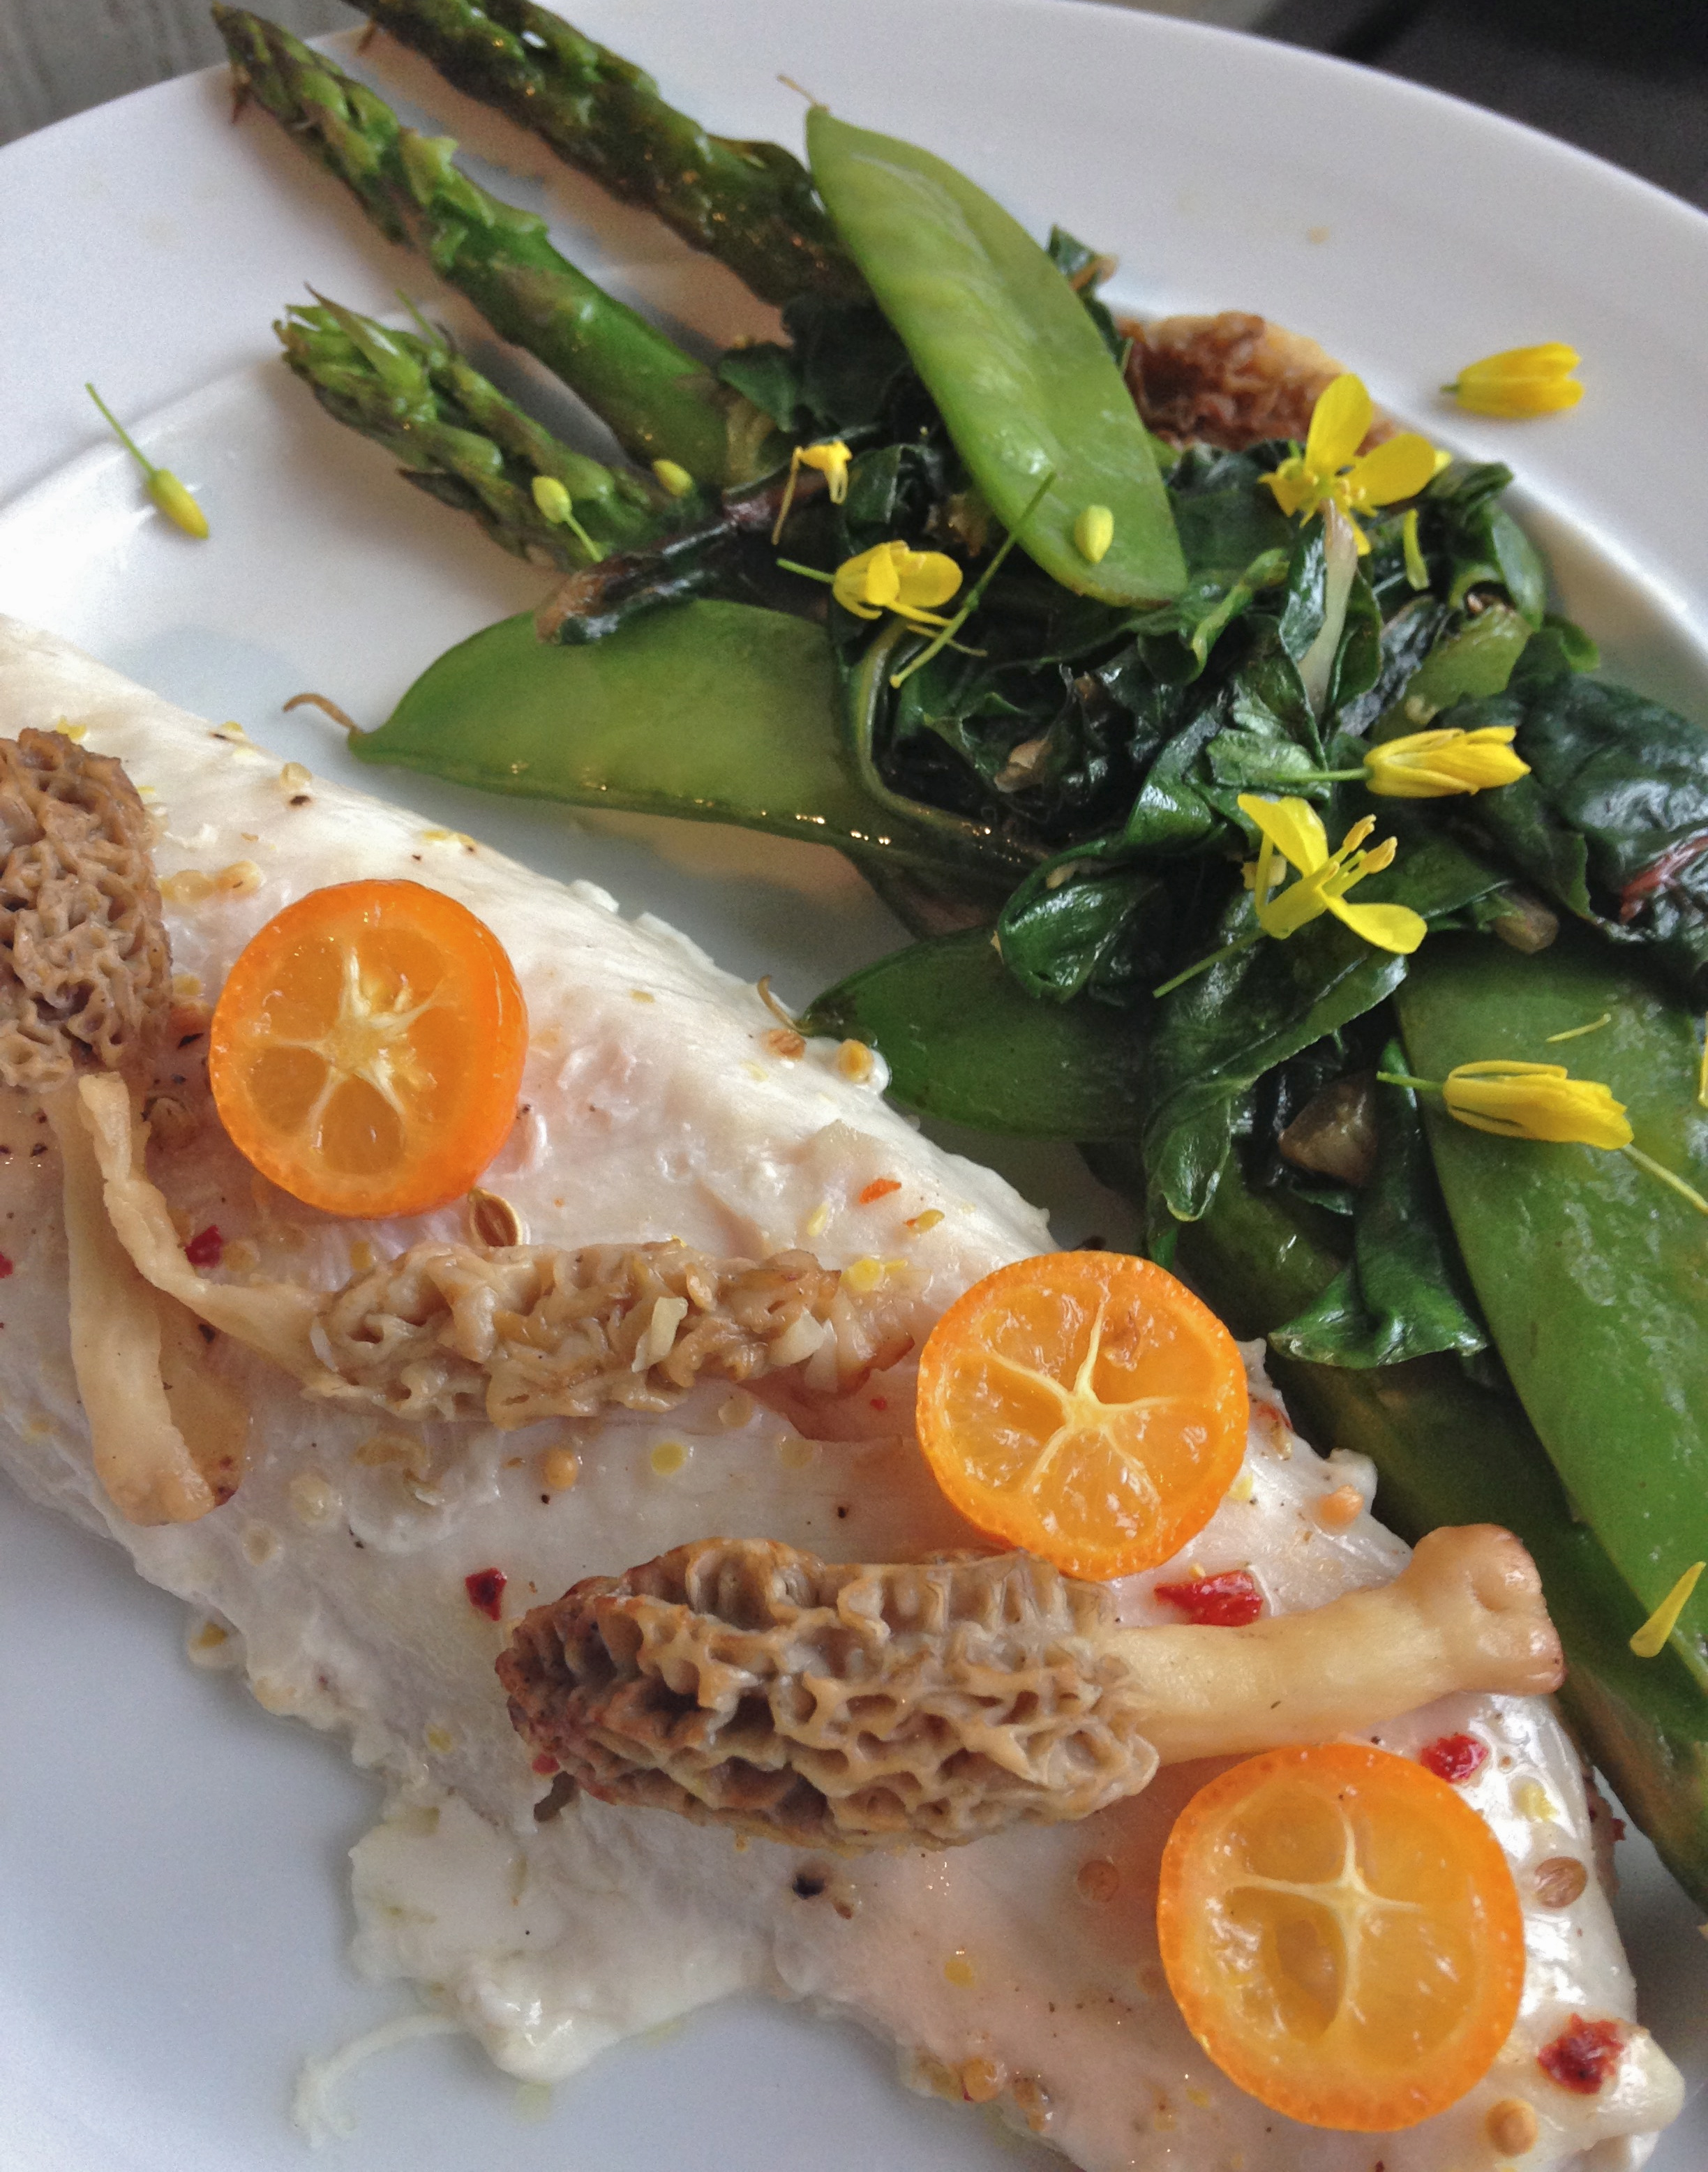 Broiled mahi mahi with morels, asparagus, peas, chard, and edible wild mustard flowers.